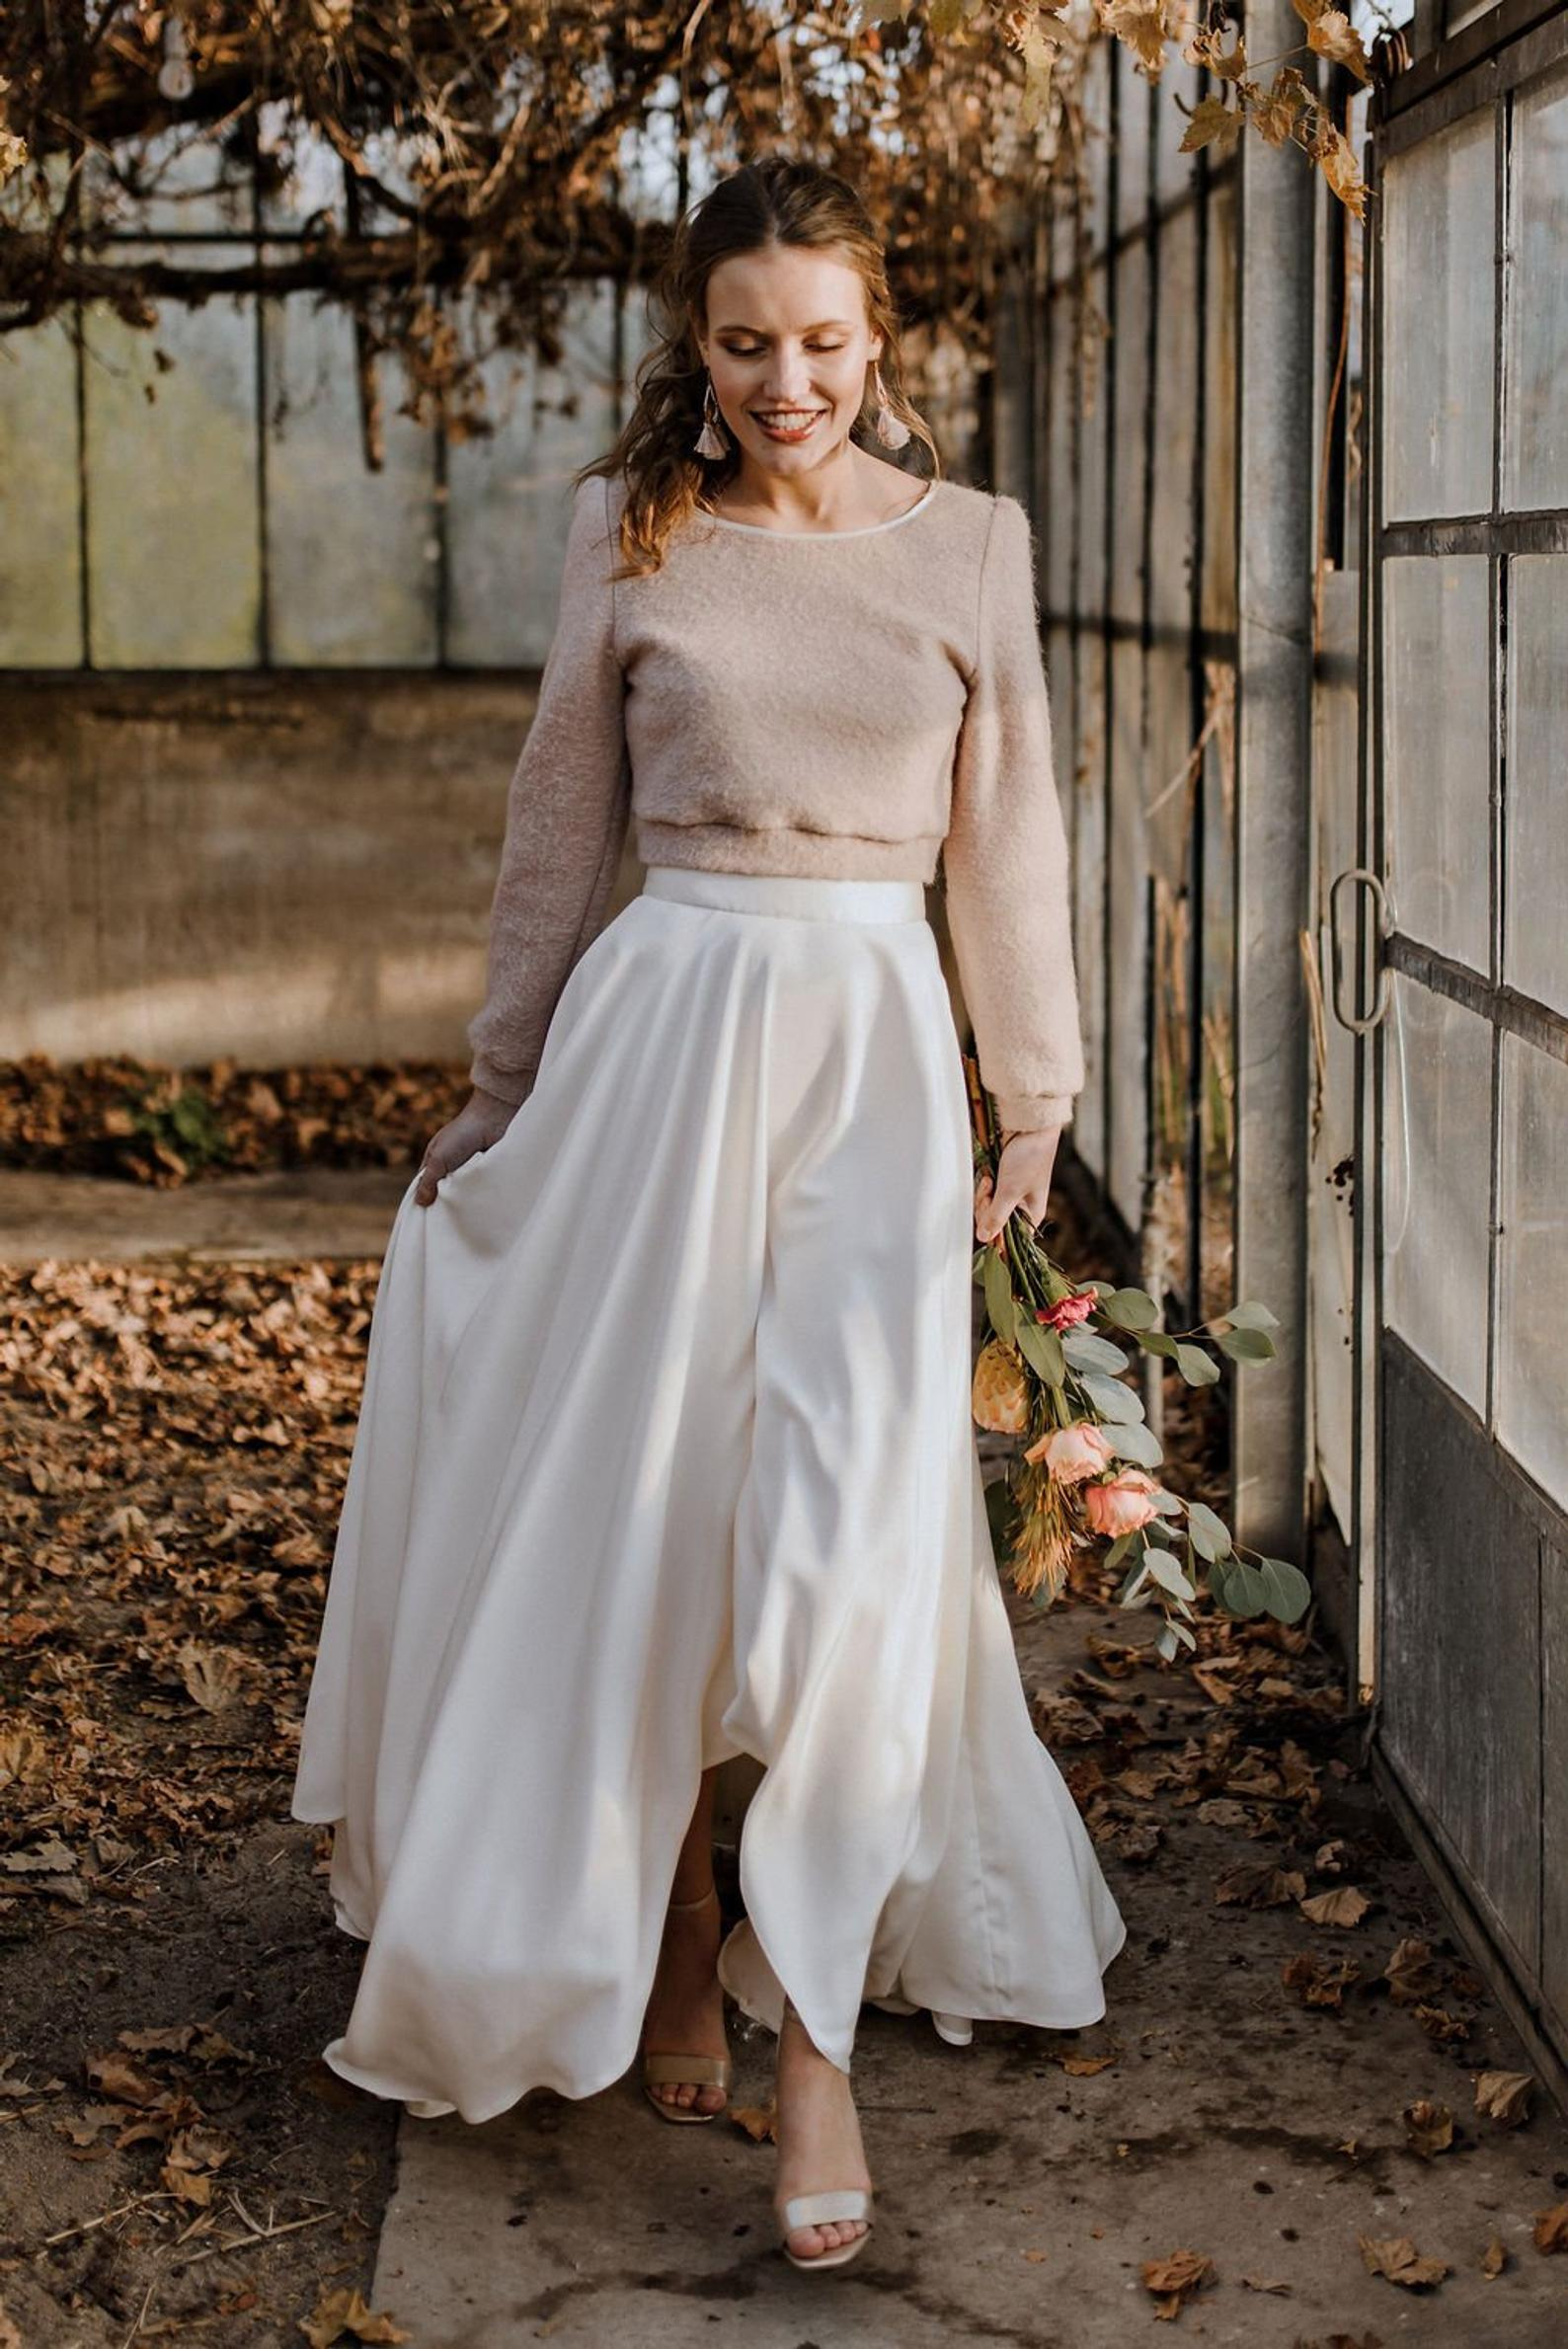 Wedding Dress Cover Up.Modern Modesty How To Cover Up While Looking Chic Nk Bride